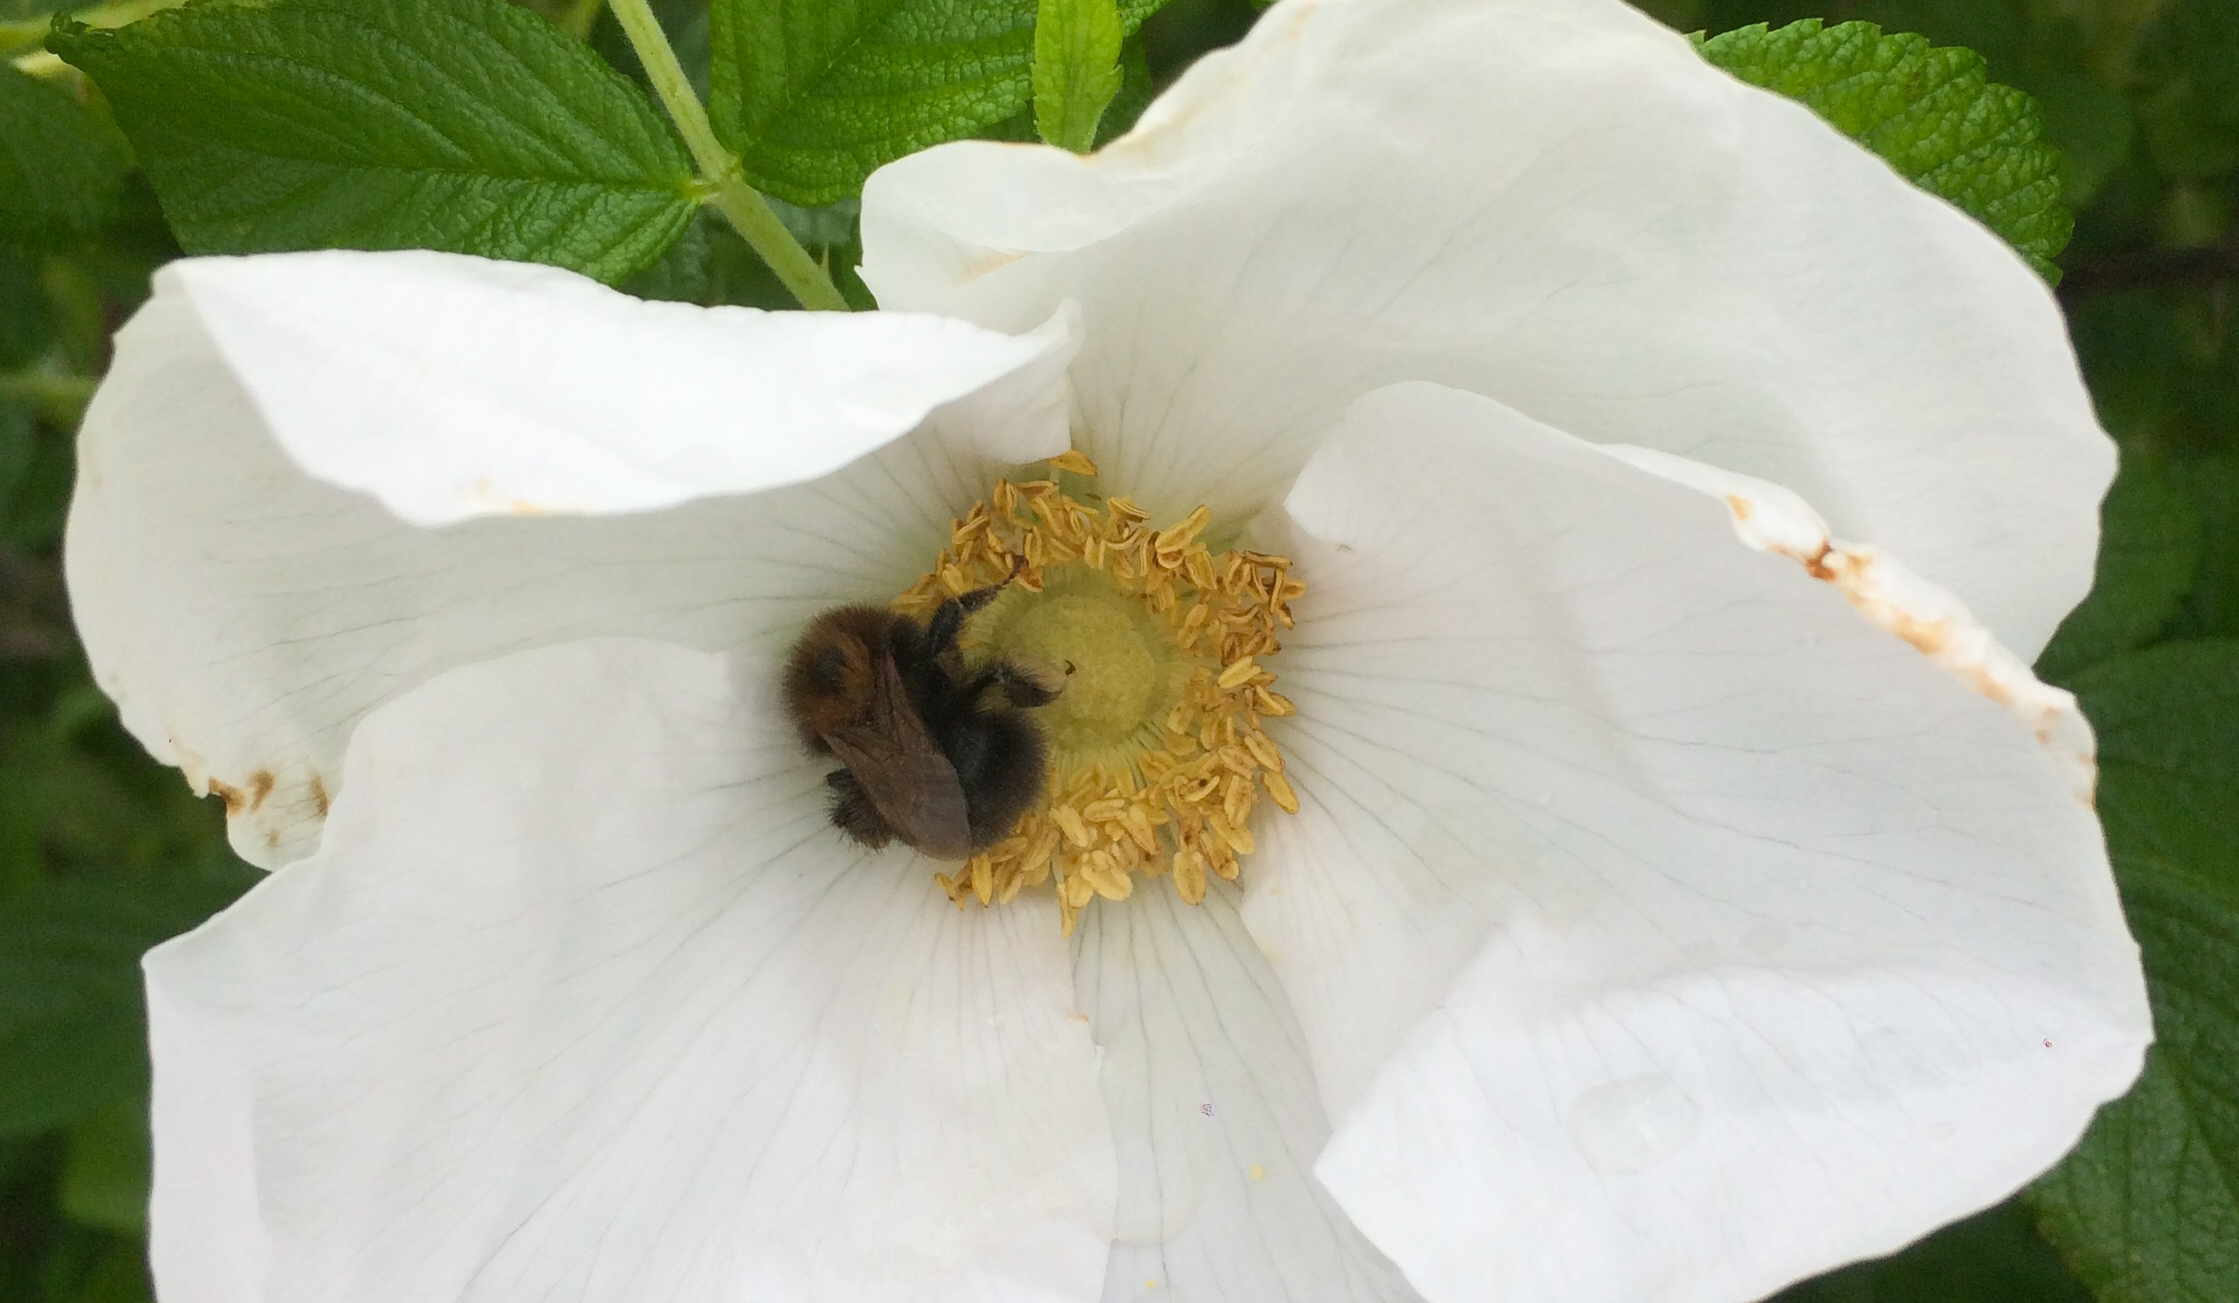 Tree bumblebee in the shade of a rosa rugosa